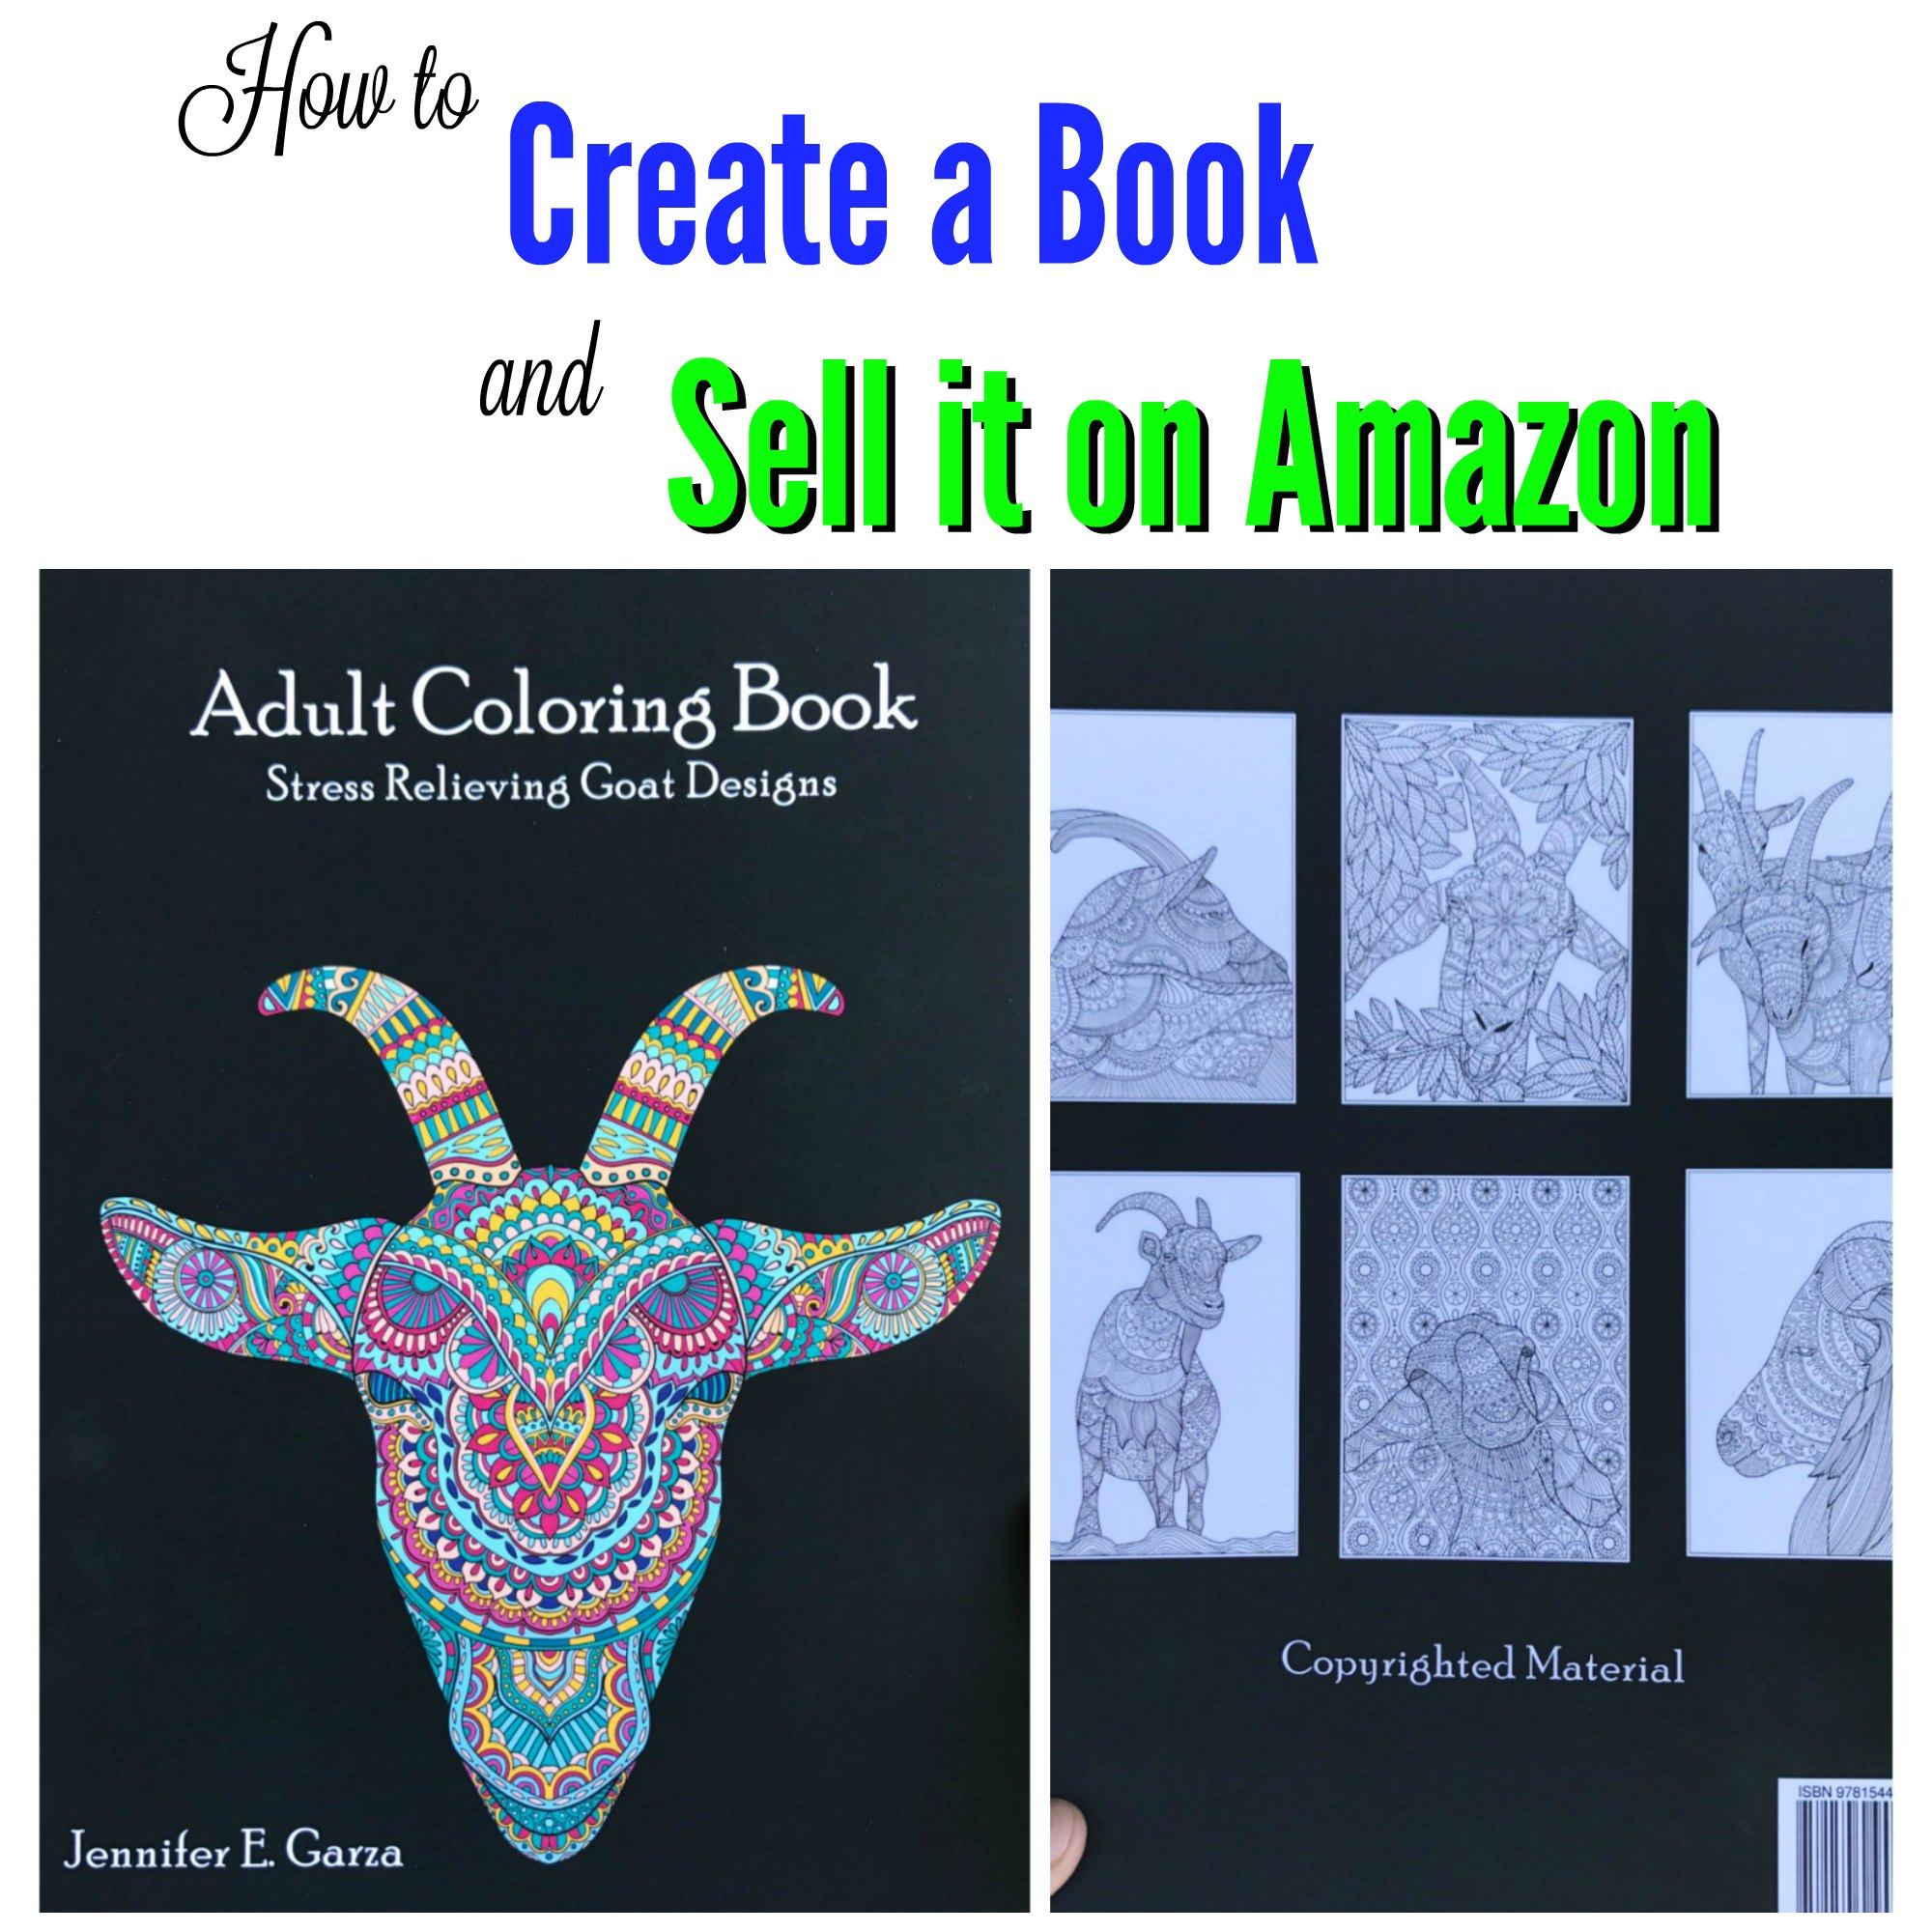 How to Create a Book and Sell it on Amazon